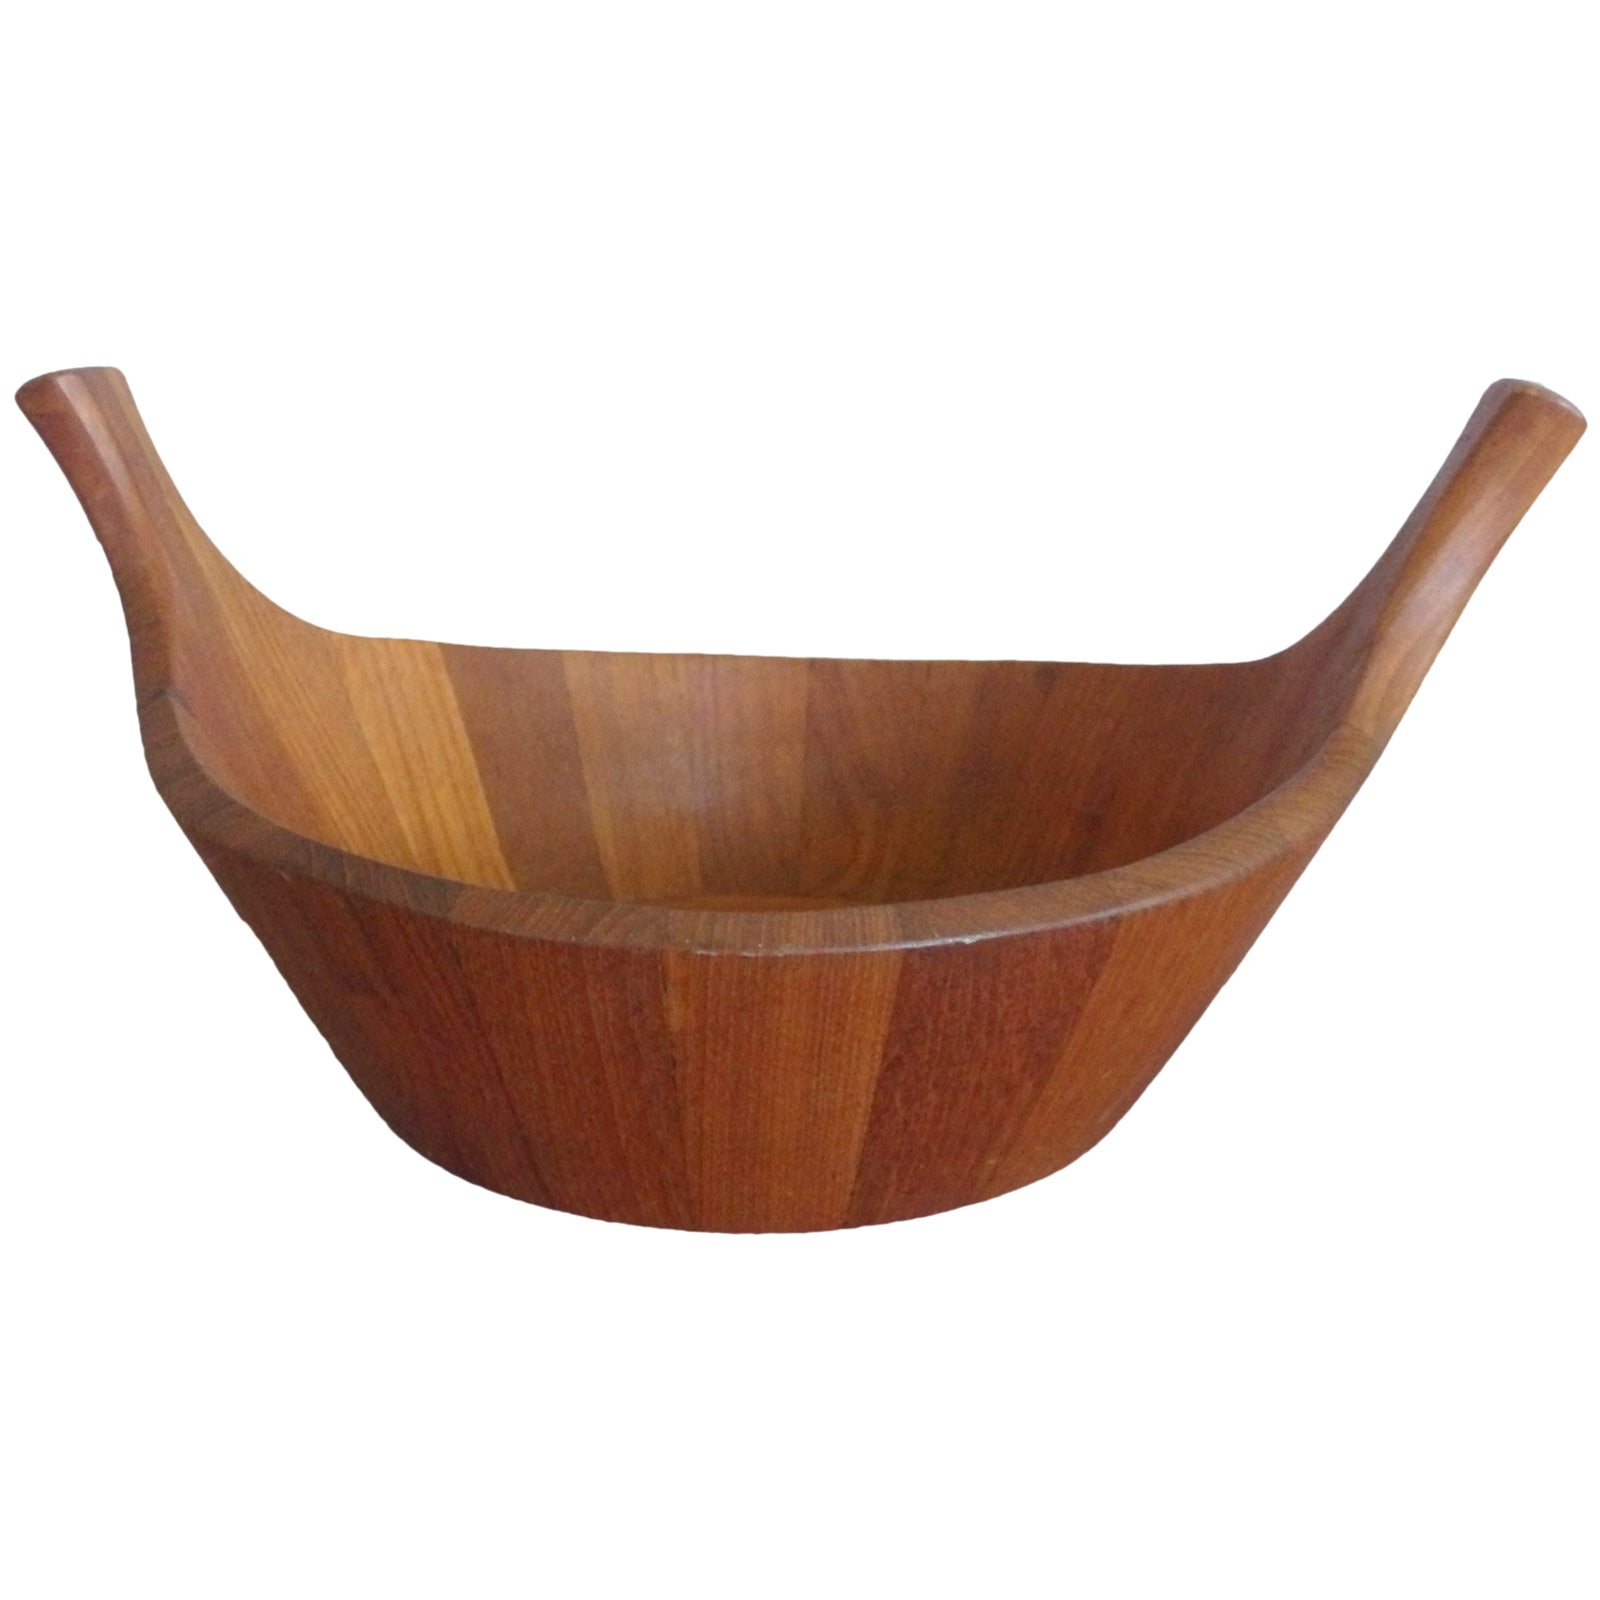 Early Production Quistgaard Dansk Staved Teak Fruit or Salad Bowl